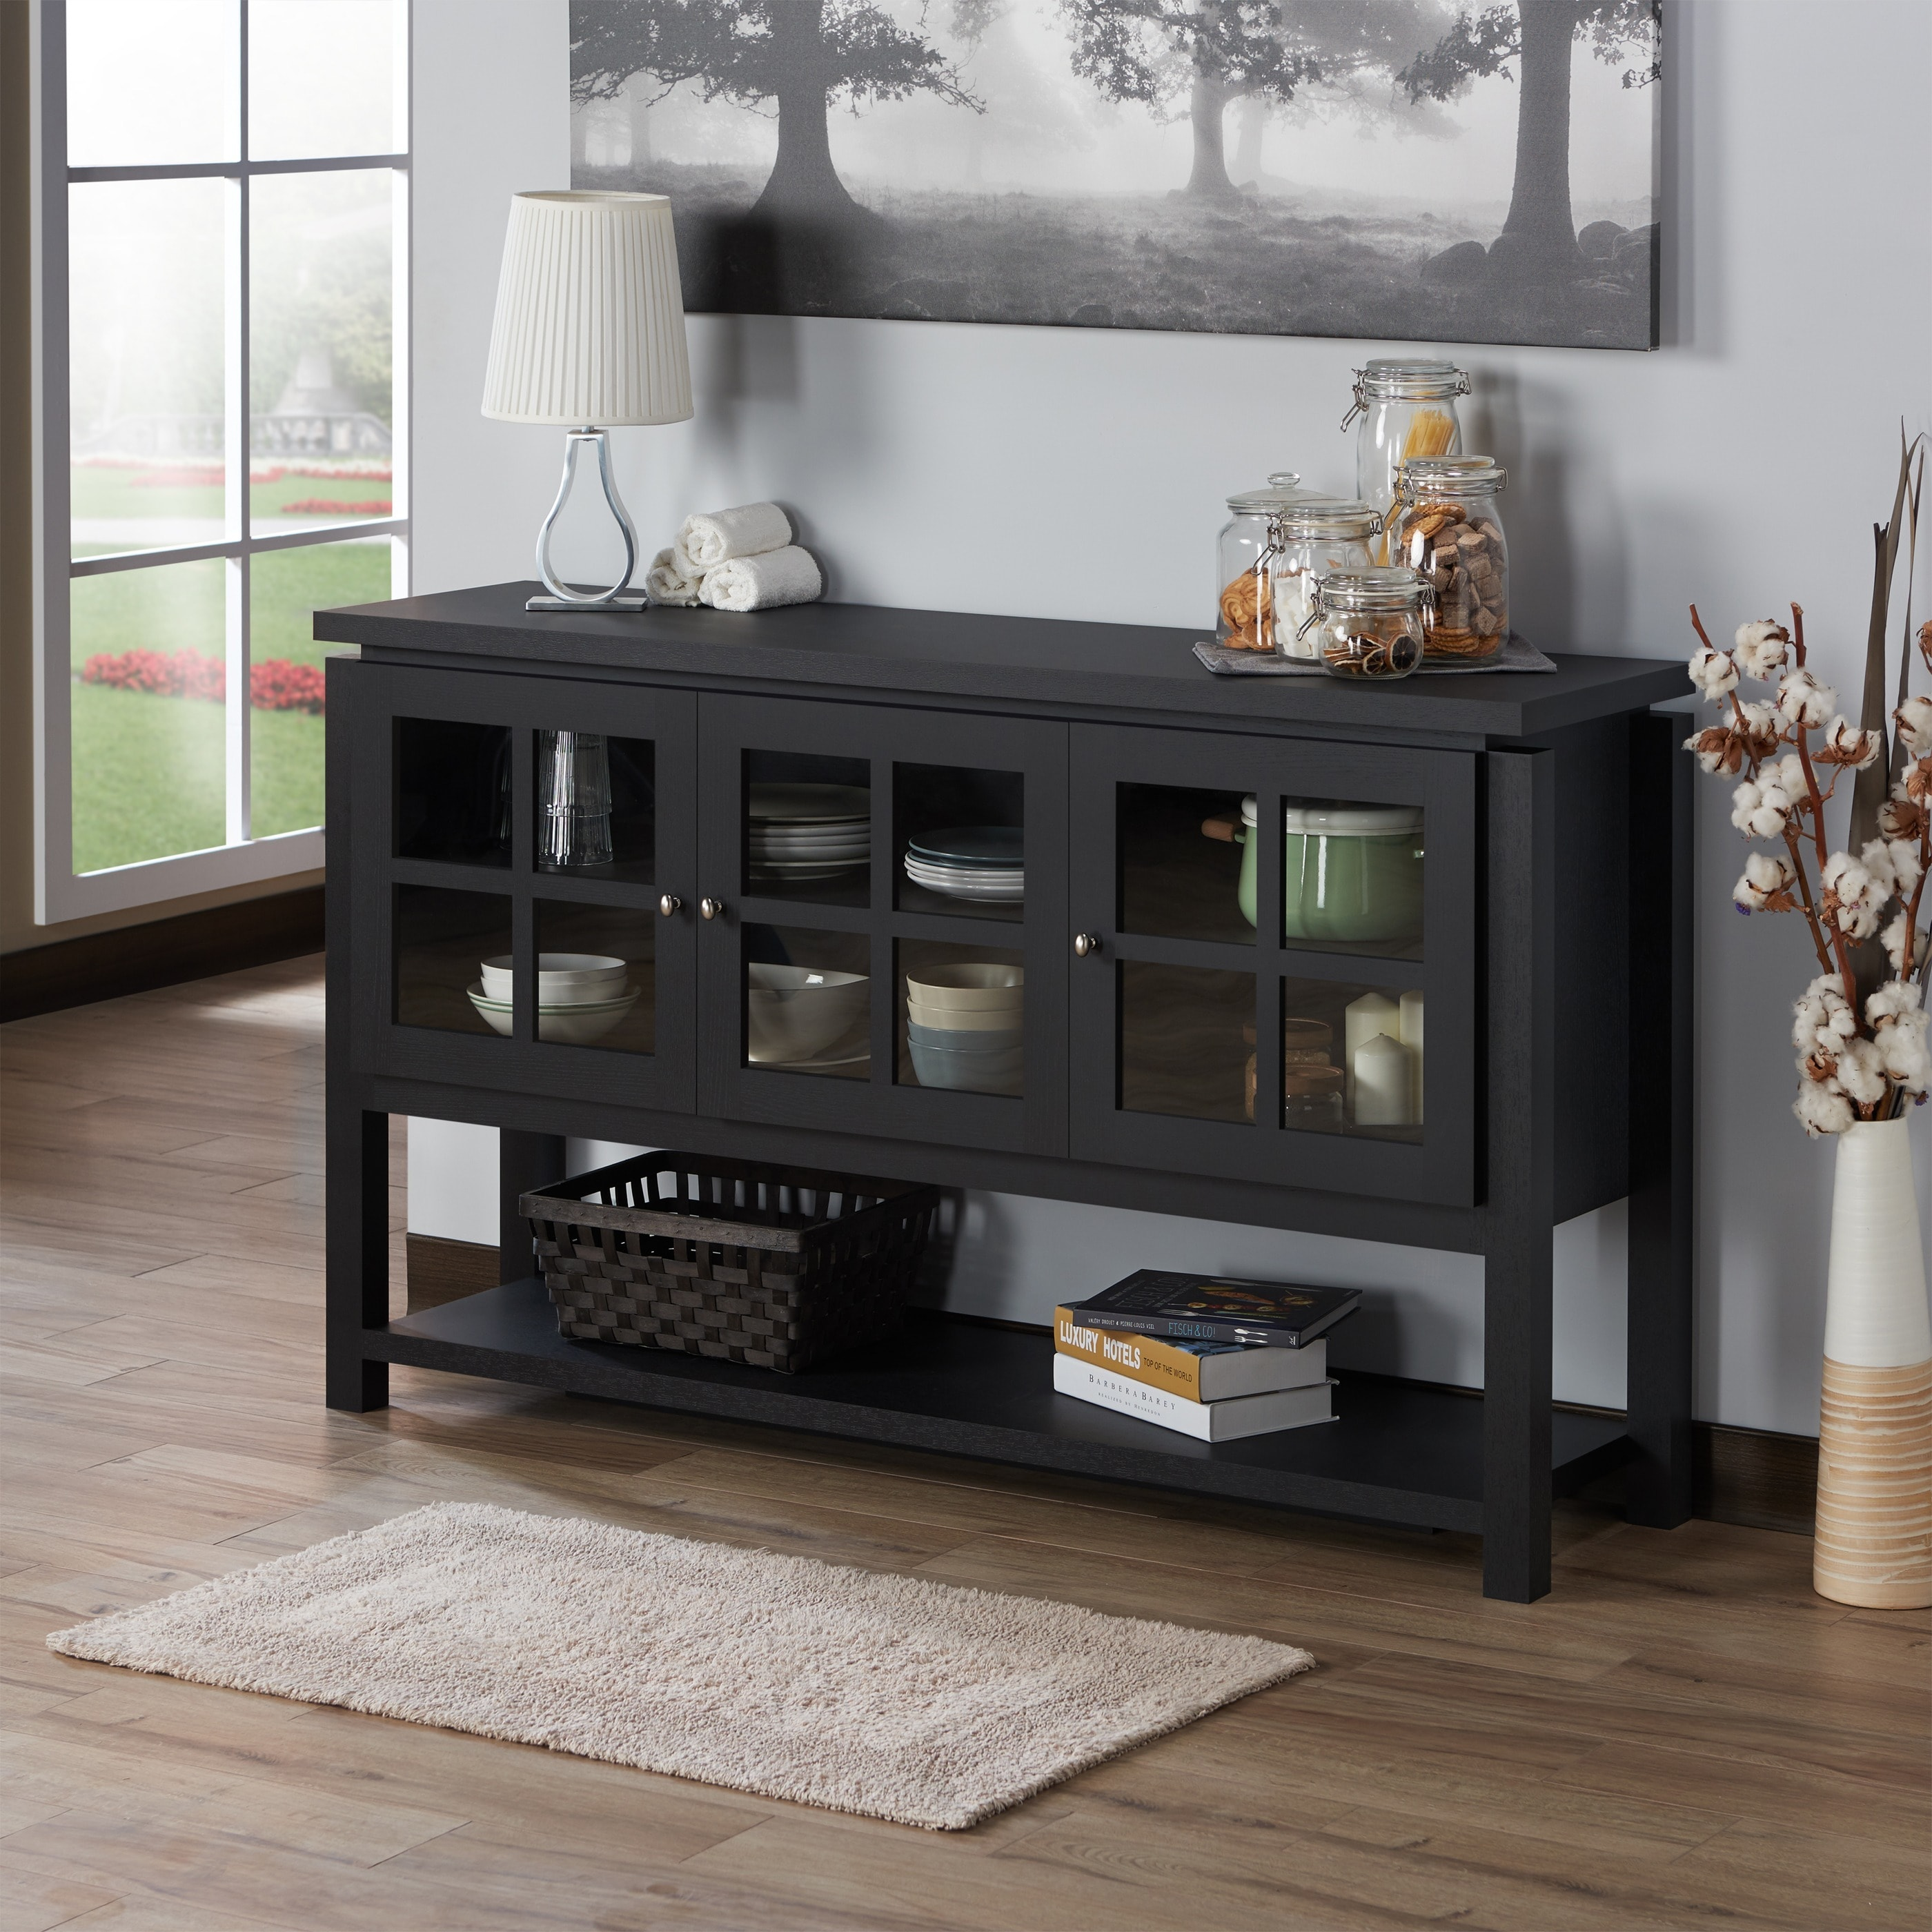 living product sideboard buffet table online furniture australia e